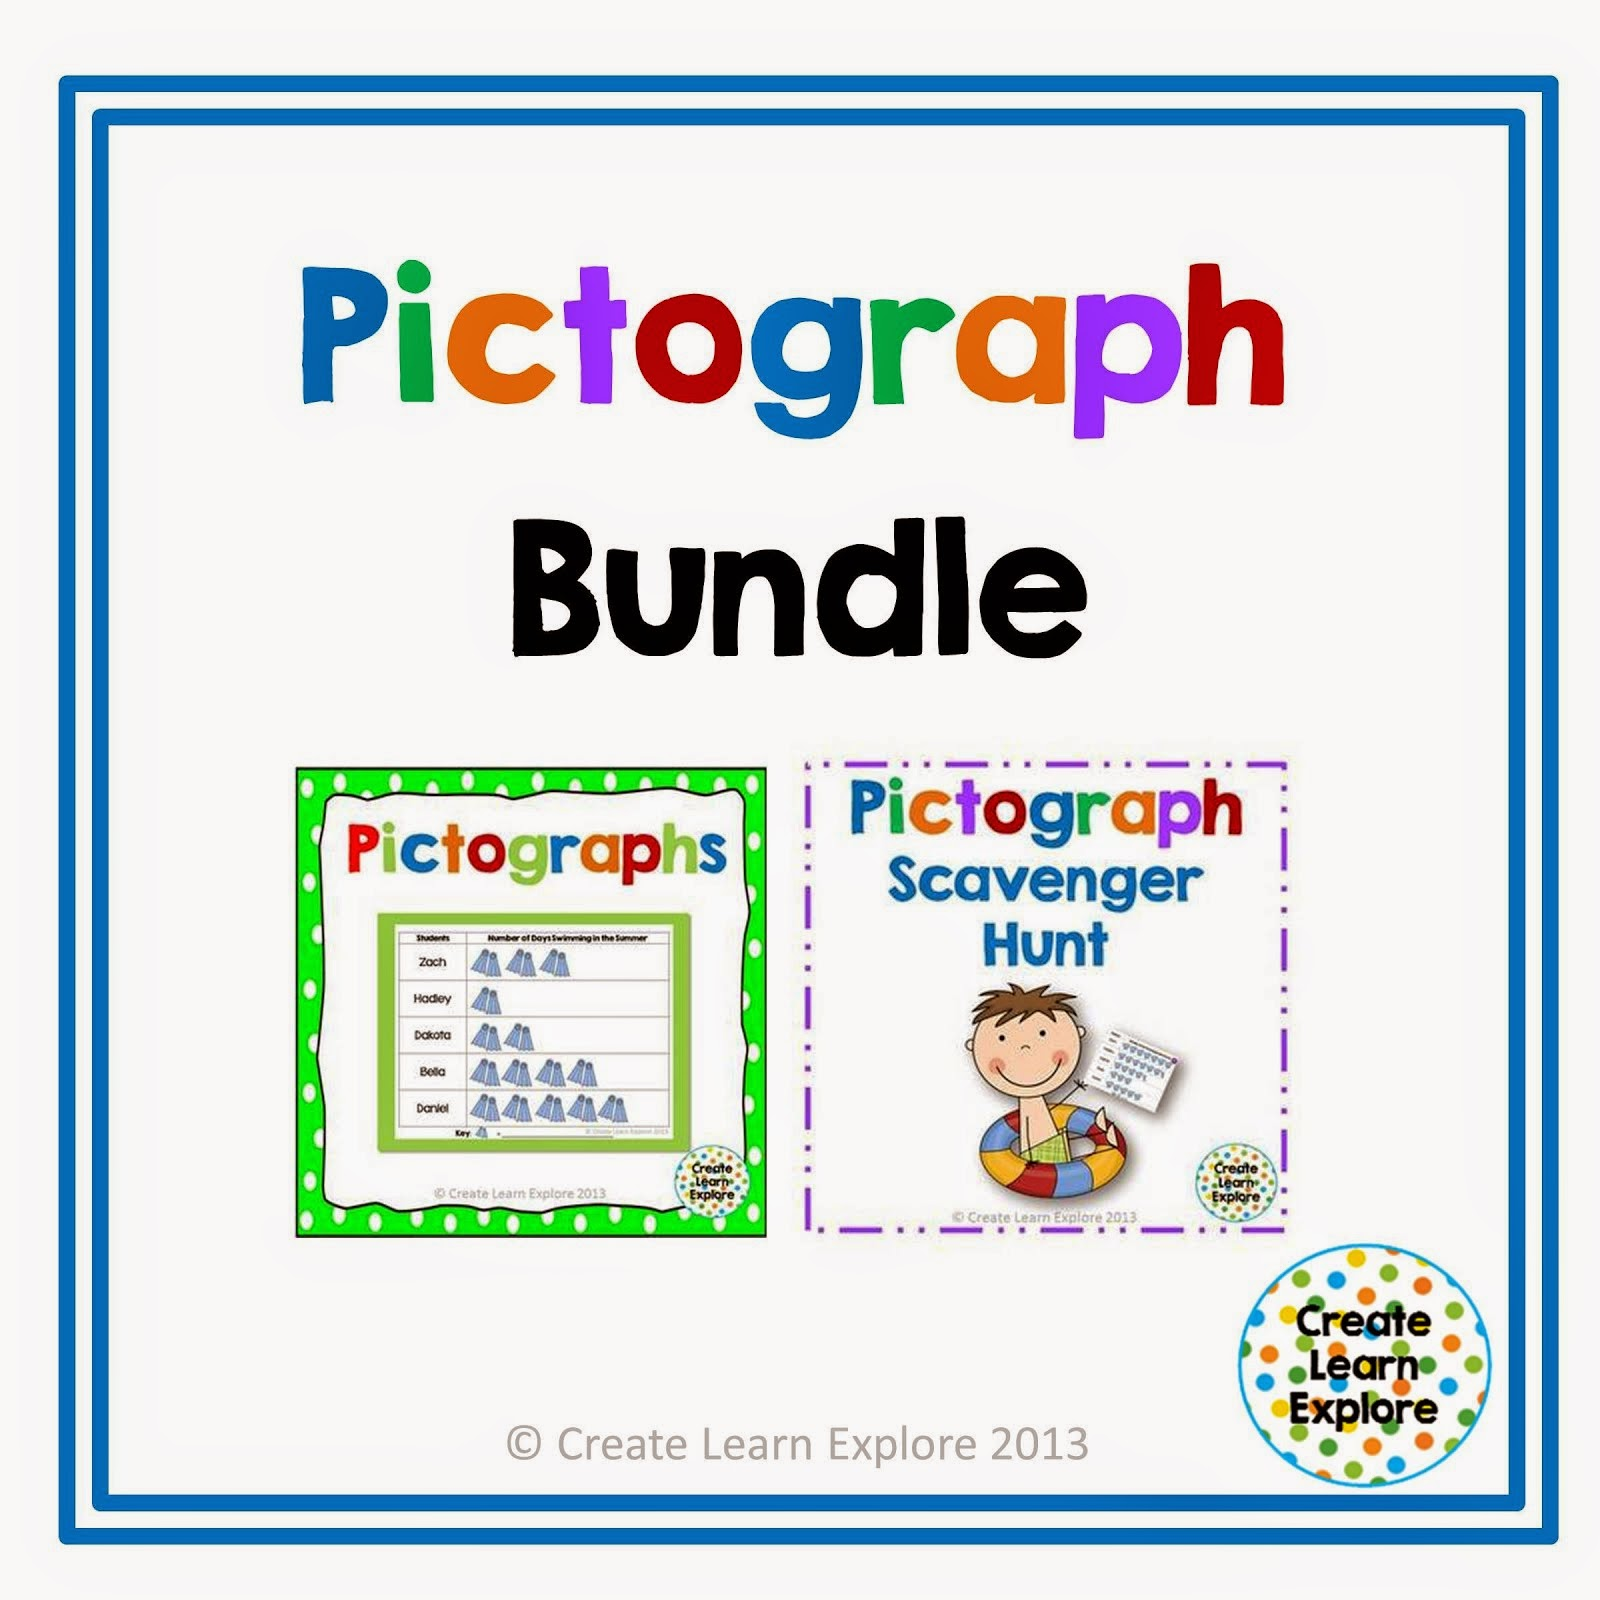 Pictograph Bundle